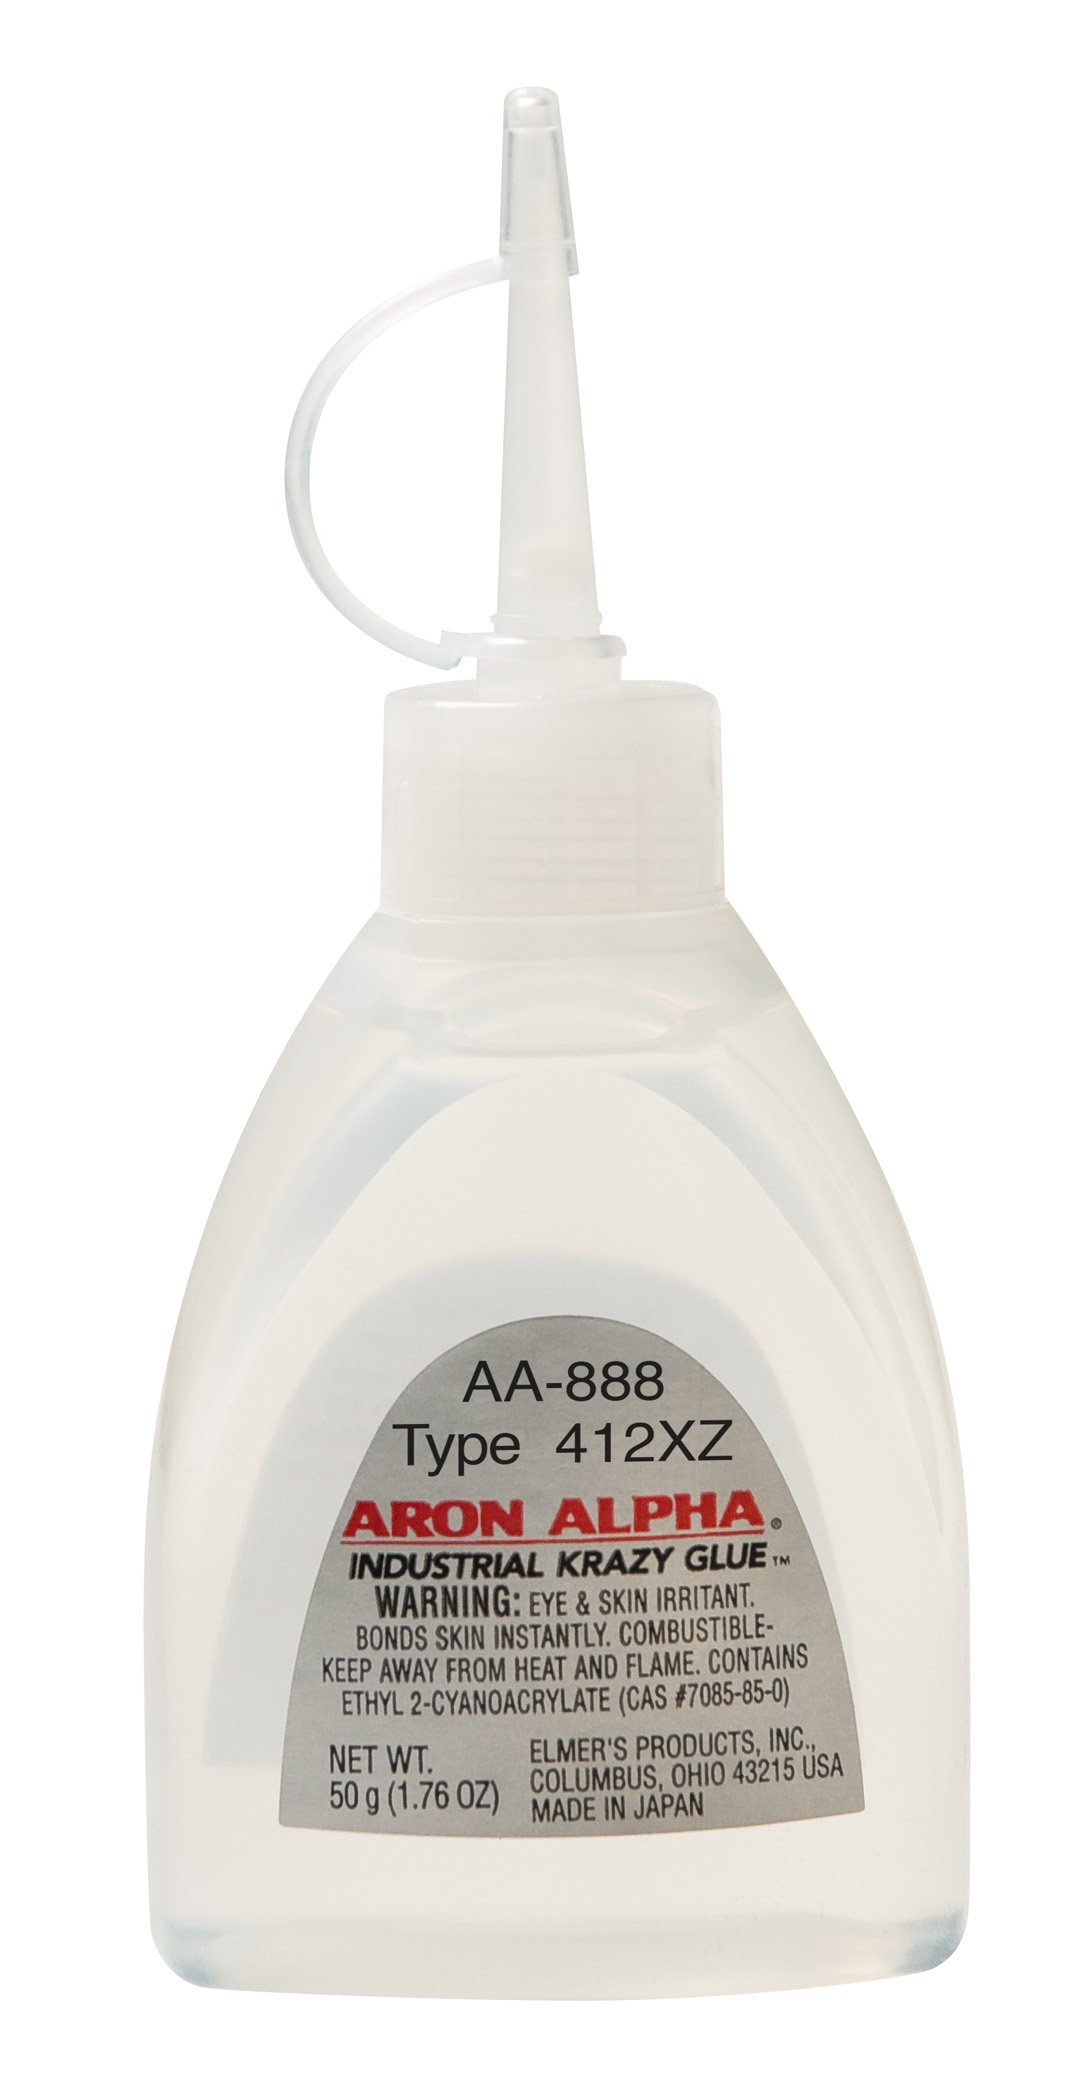 Aron Alpha 412XZ (100 cps) High Heat (250 F) and Impact Resistant Instant Adhesive 50 g (1.76 oz) Bottle by Aron Alpha Industrial Krazy Glue (Image #1)